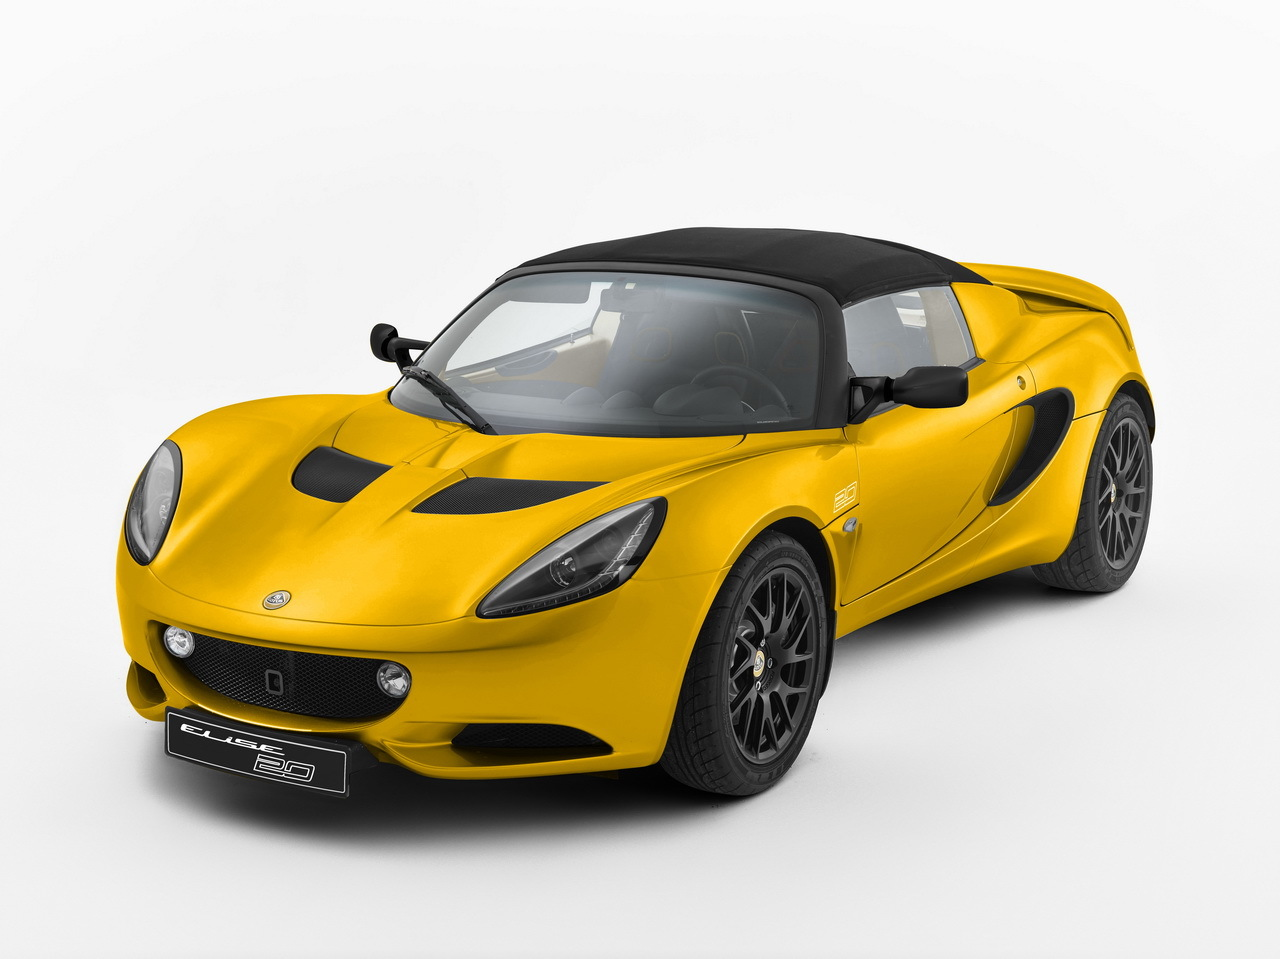 la lotus elise f te ses 20 ans avec le lancement d 39 une. Black Bedroom Furniture Sets. Home Design Ideas